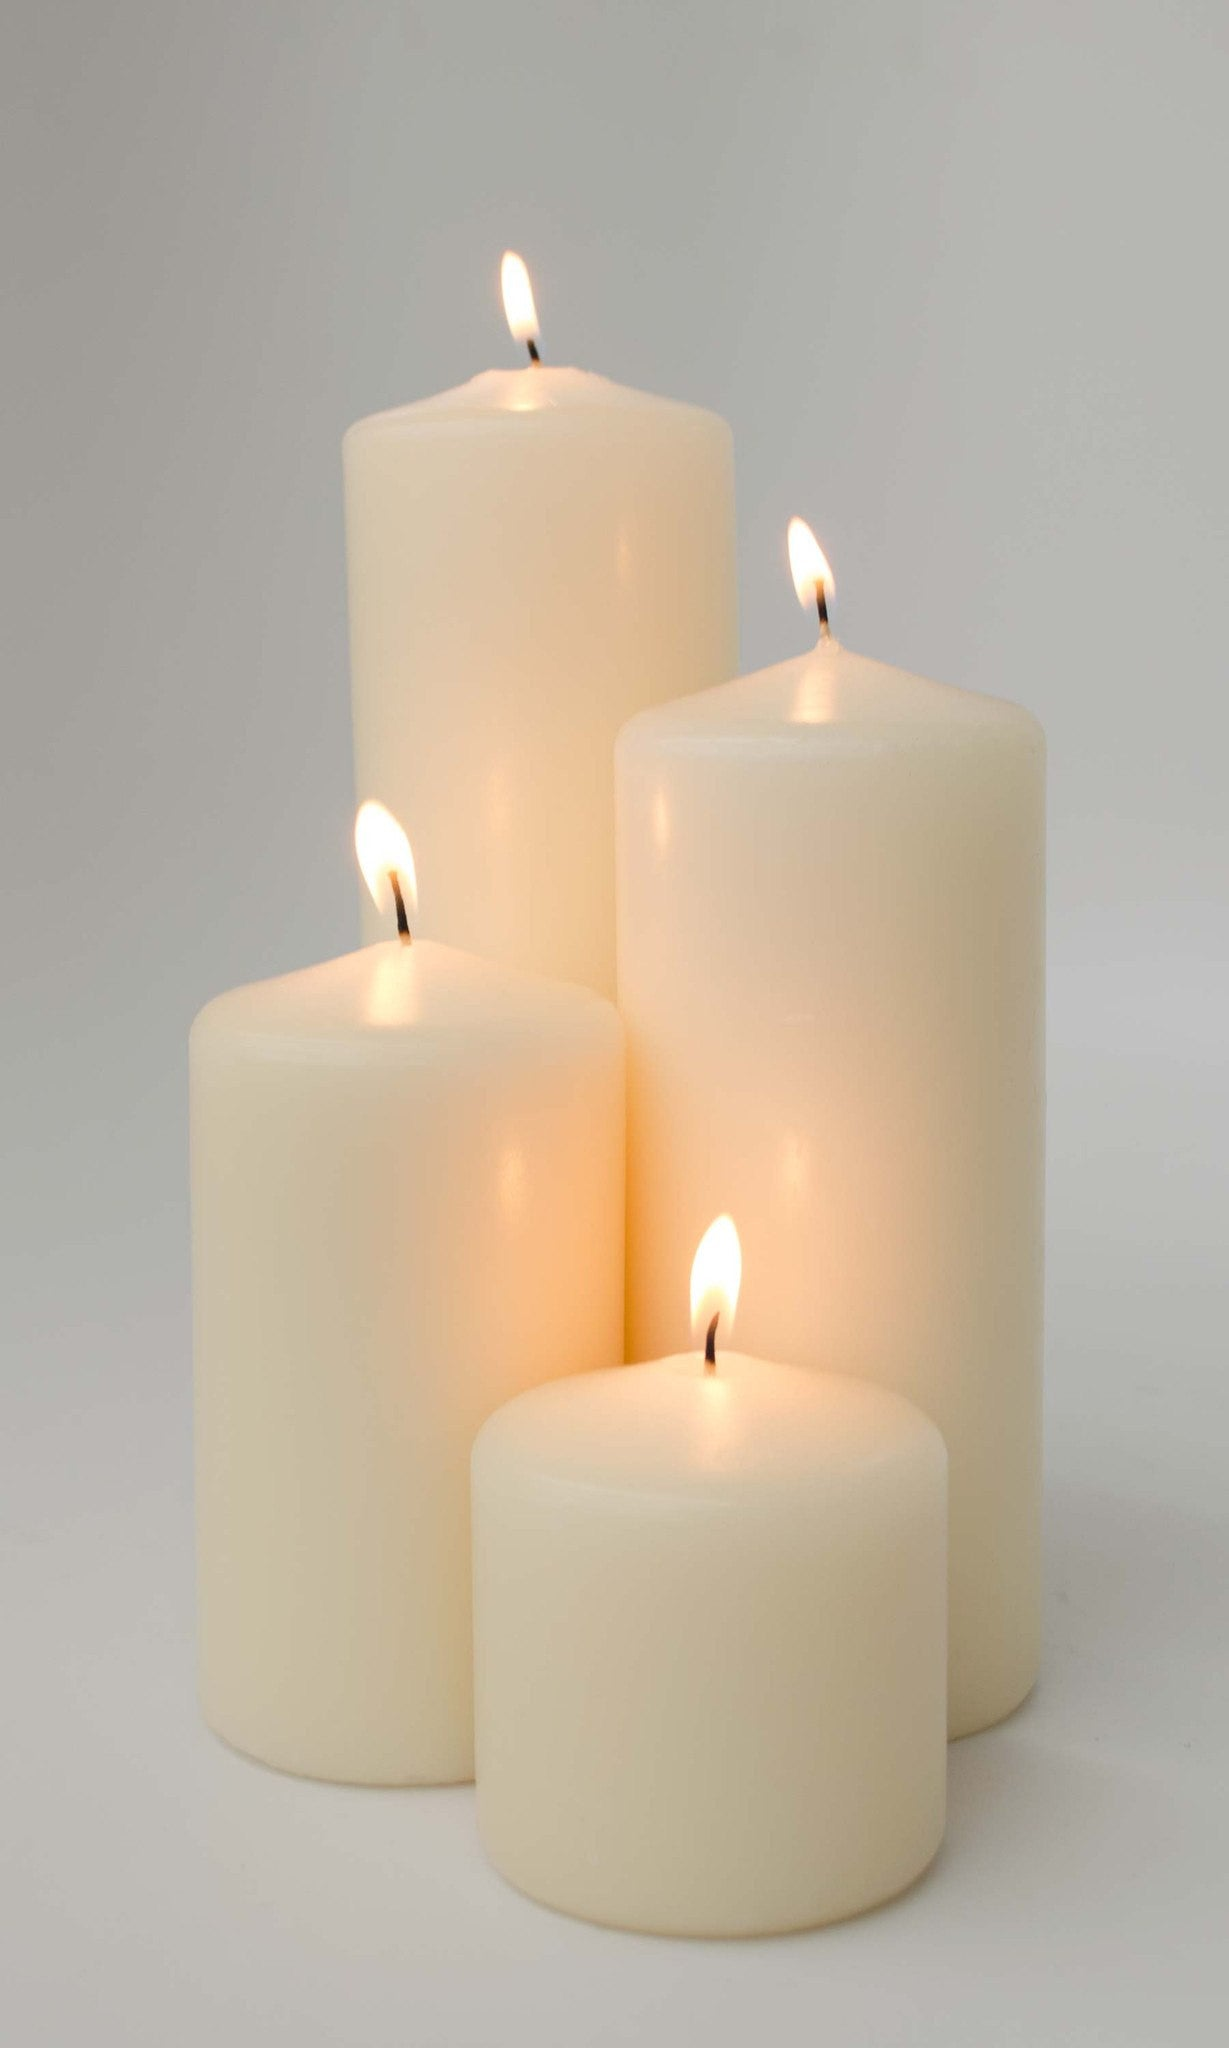 3x6 Unscented Ivory Pillar Candle